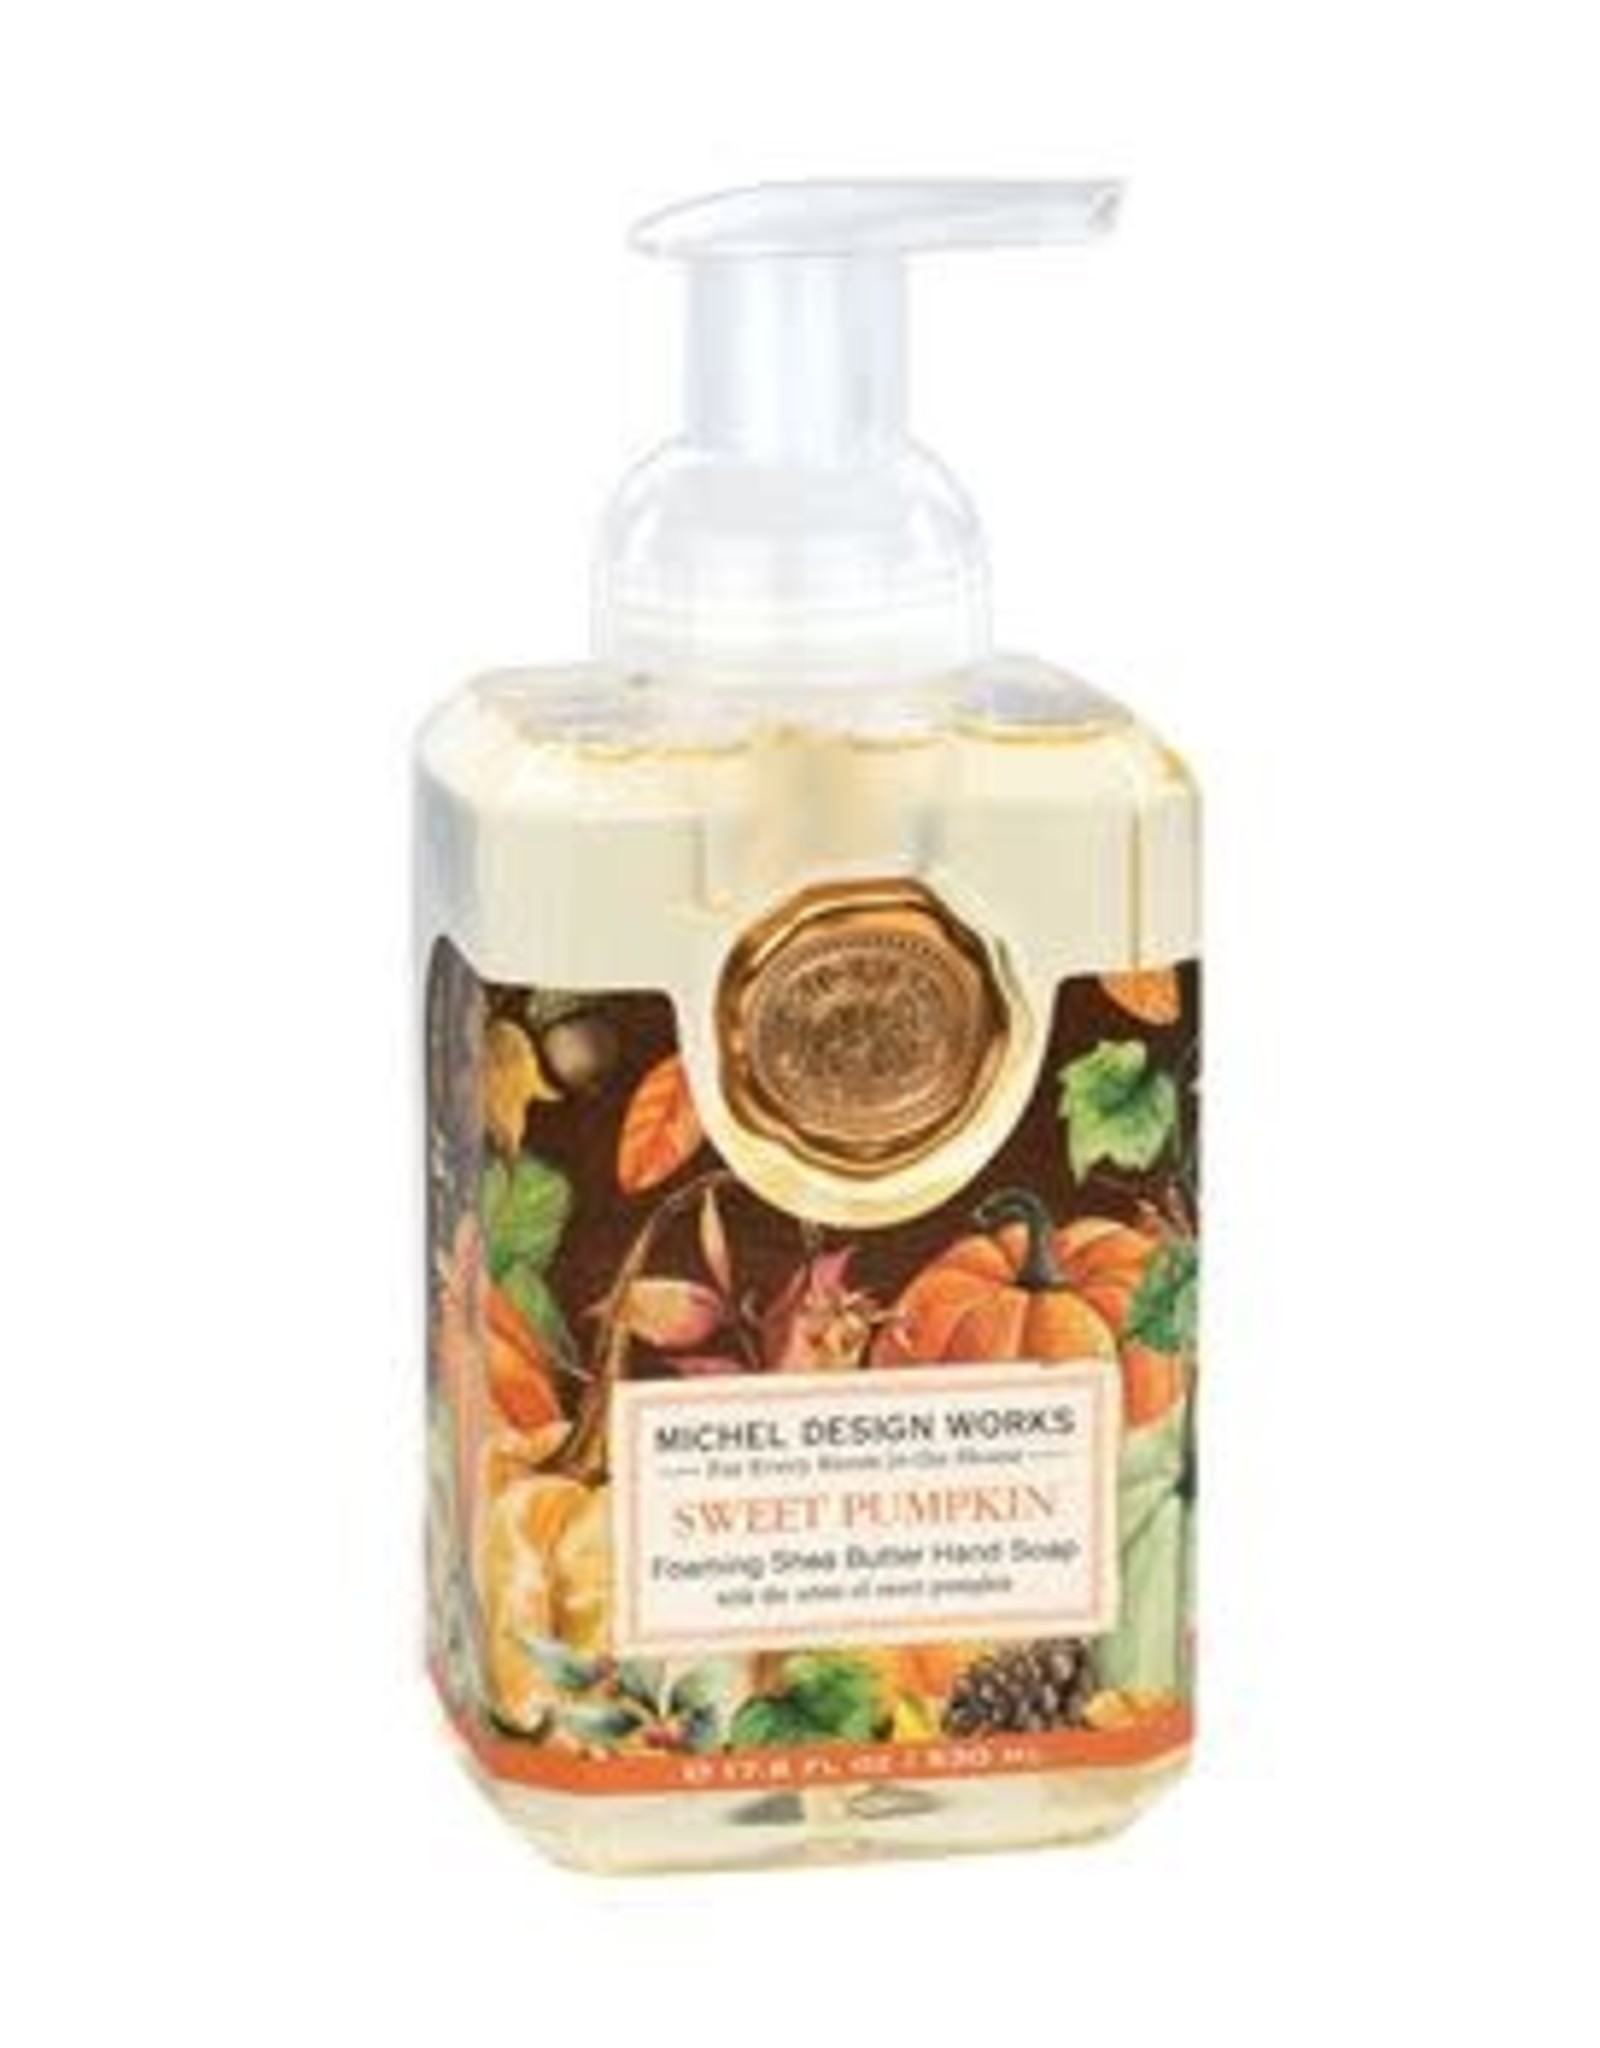 Michel Design Works Sweet Pumpkin Foaming Soap